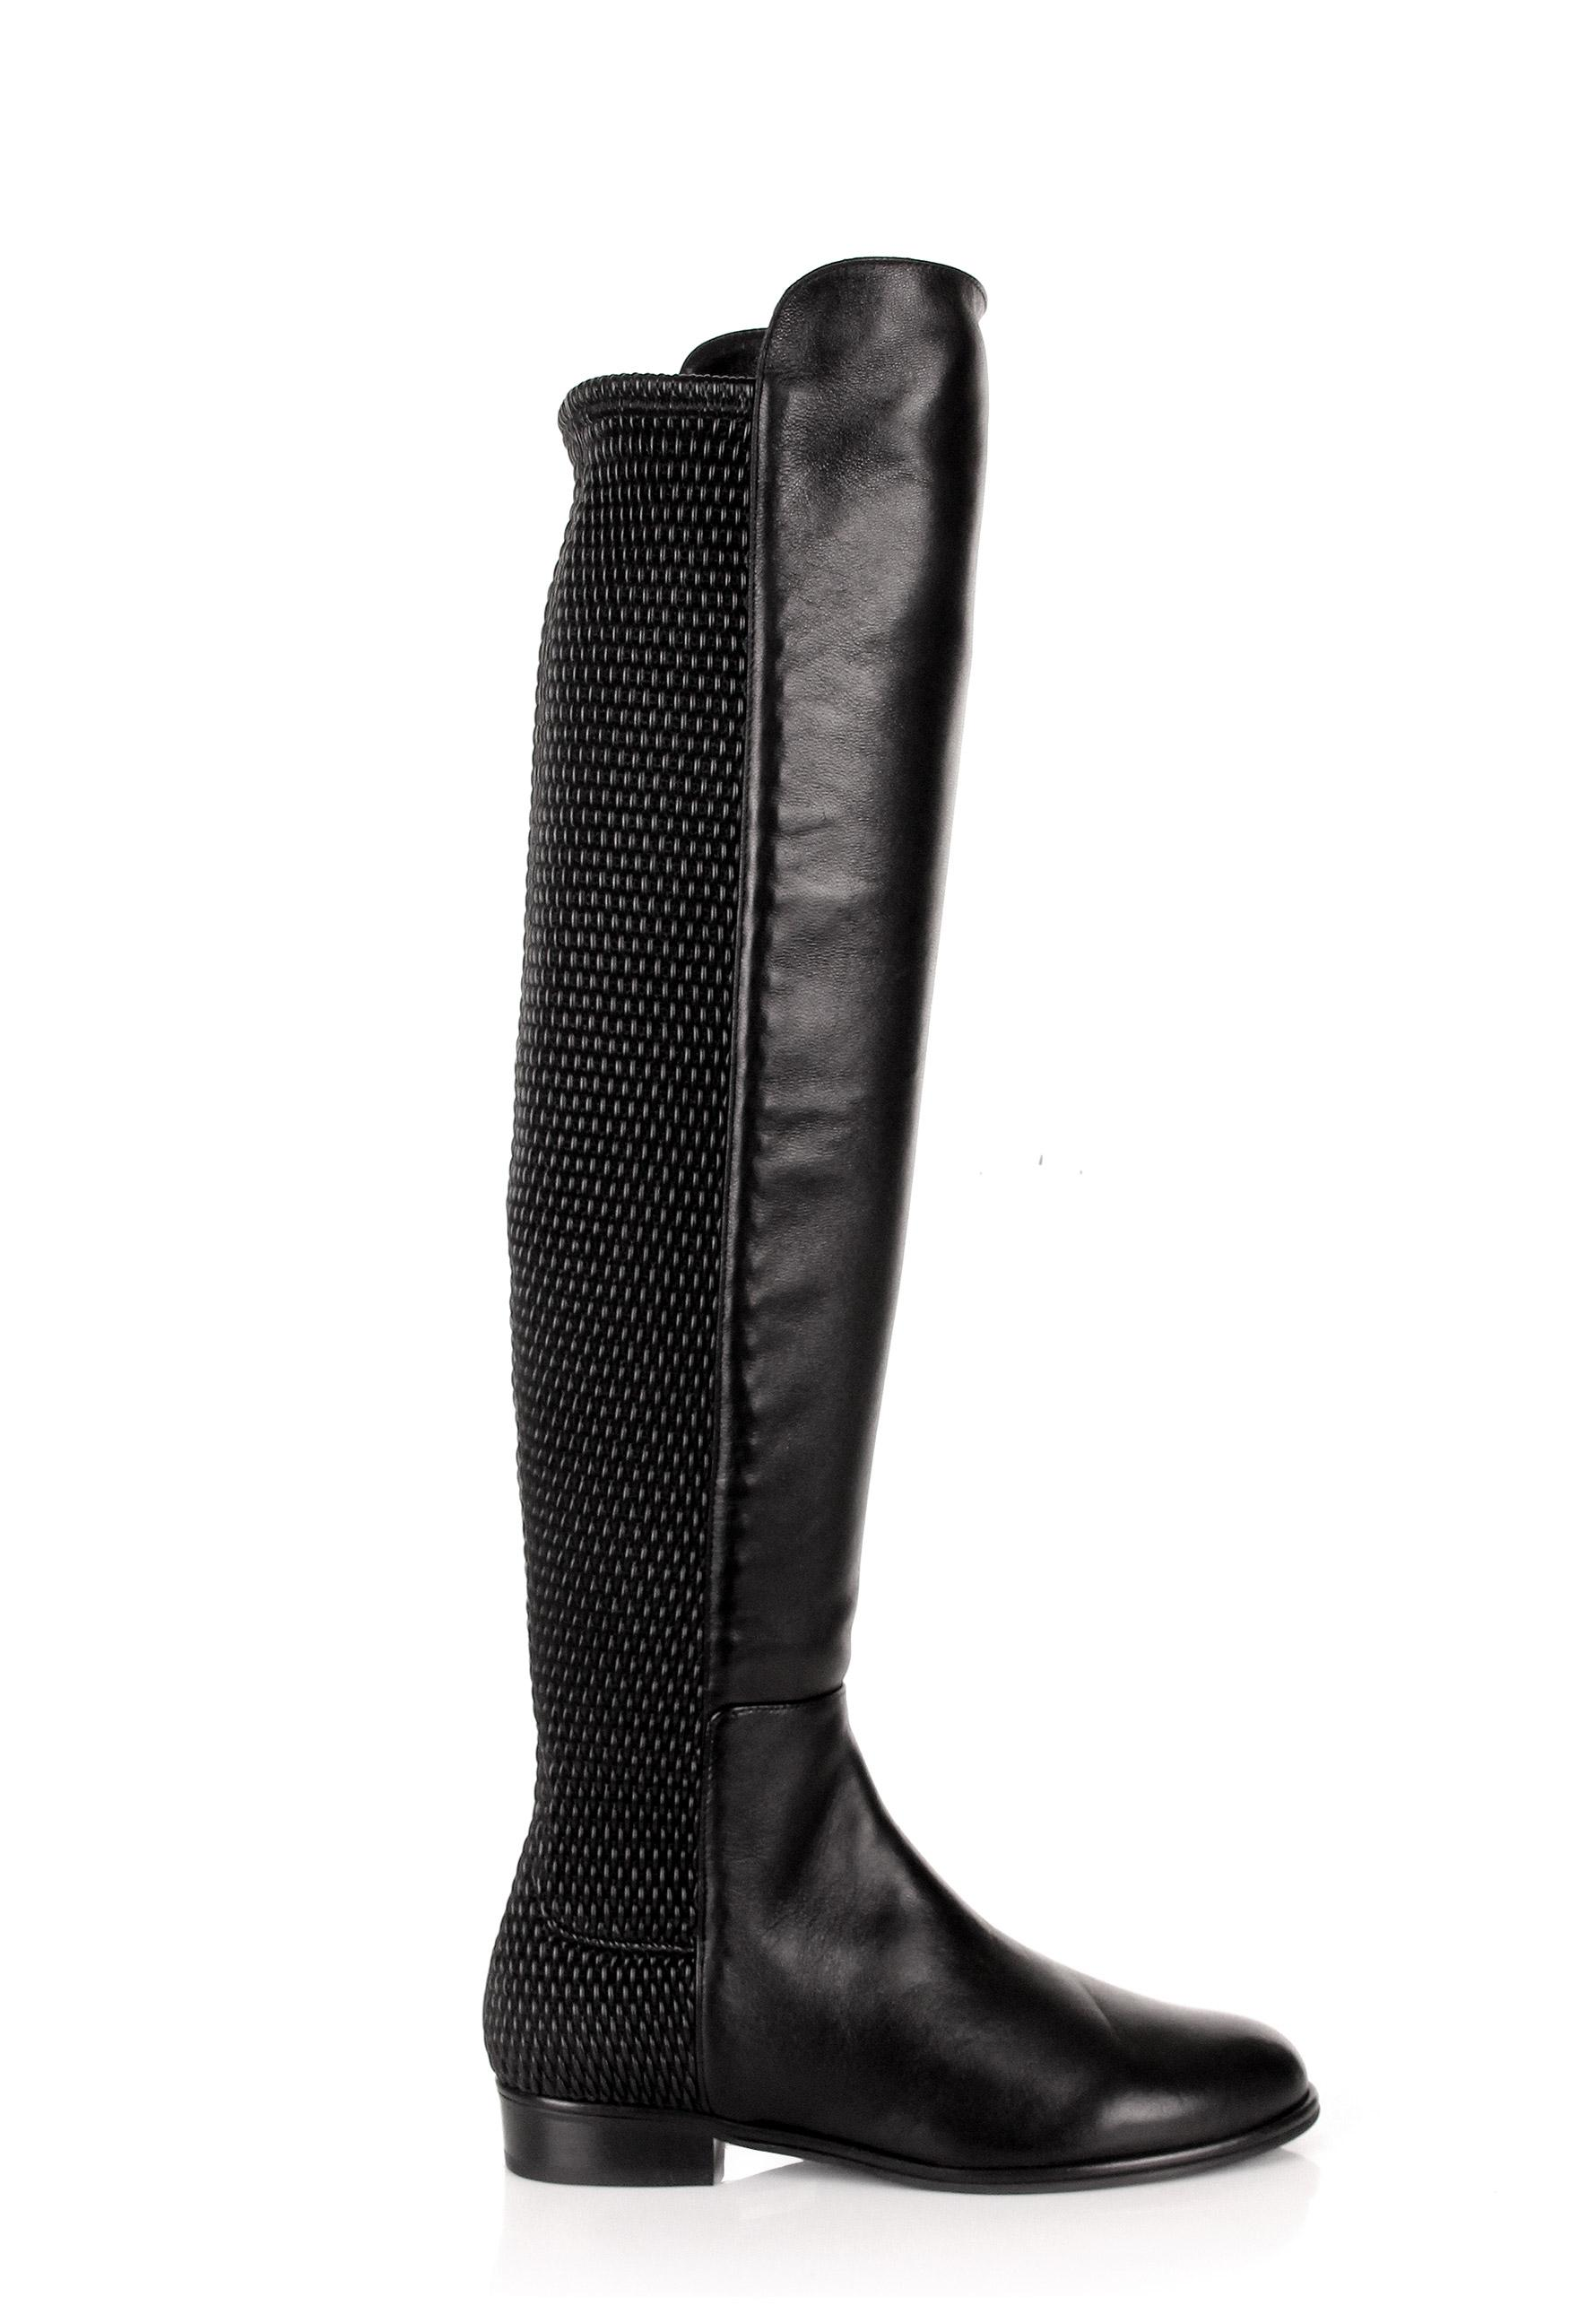 Cheap Stuart Weitzman Allgood Nappa Black For Women Sale Online